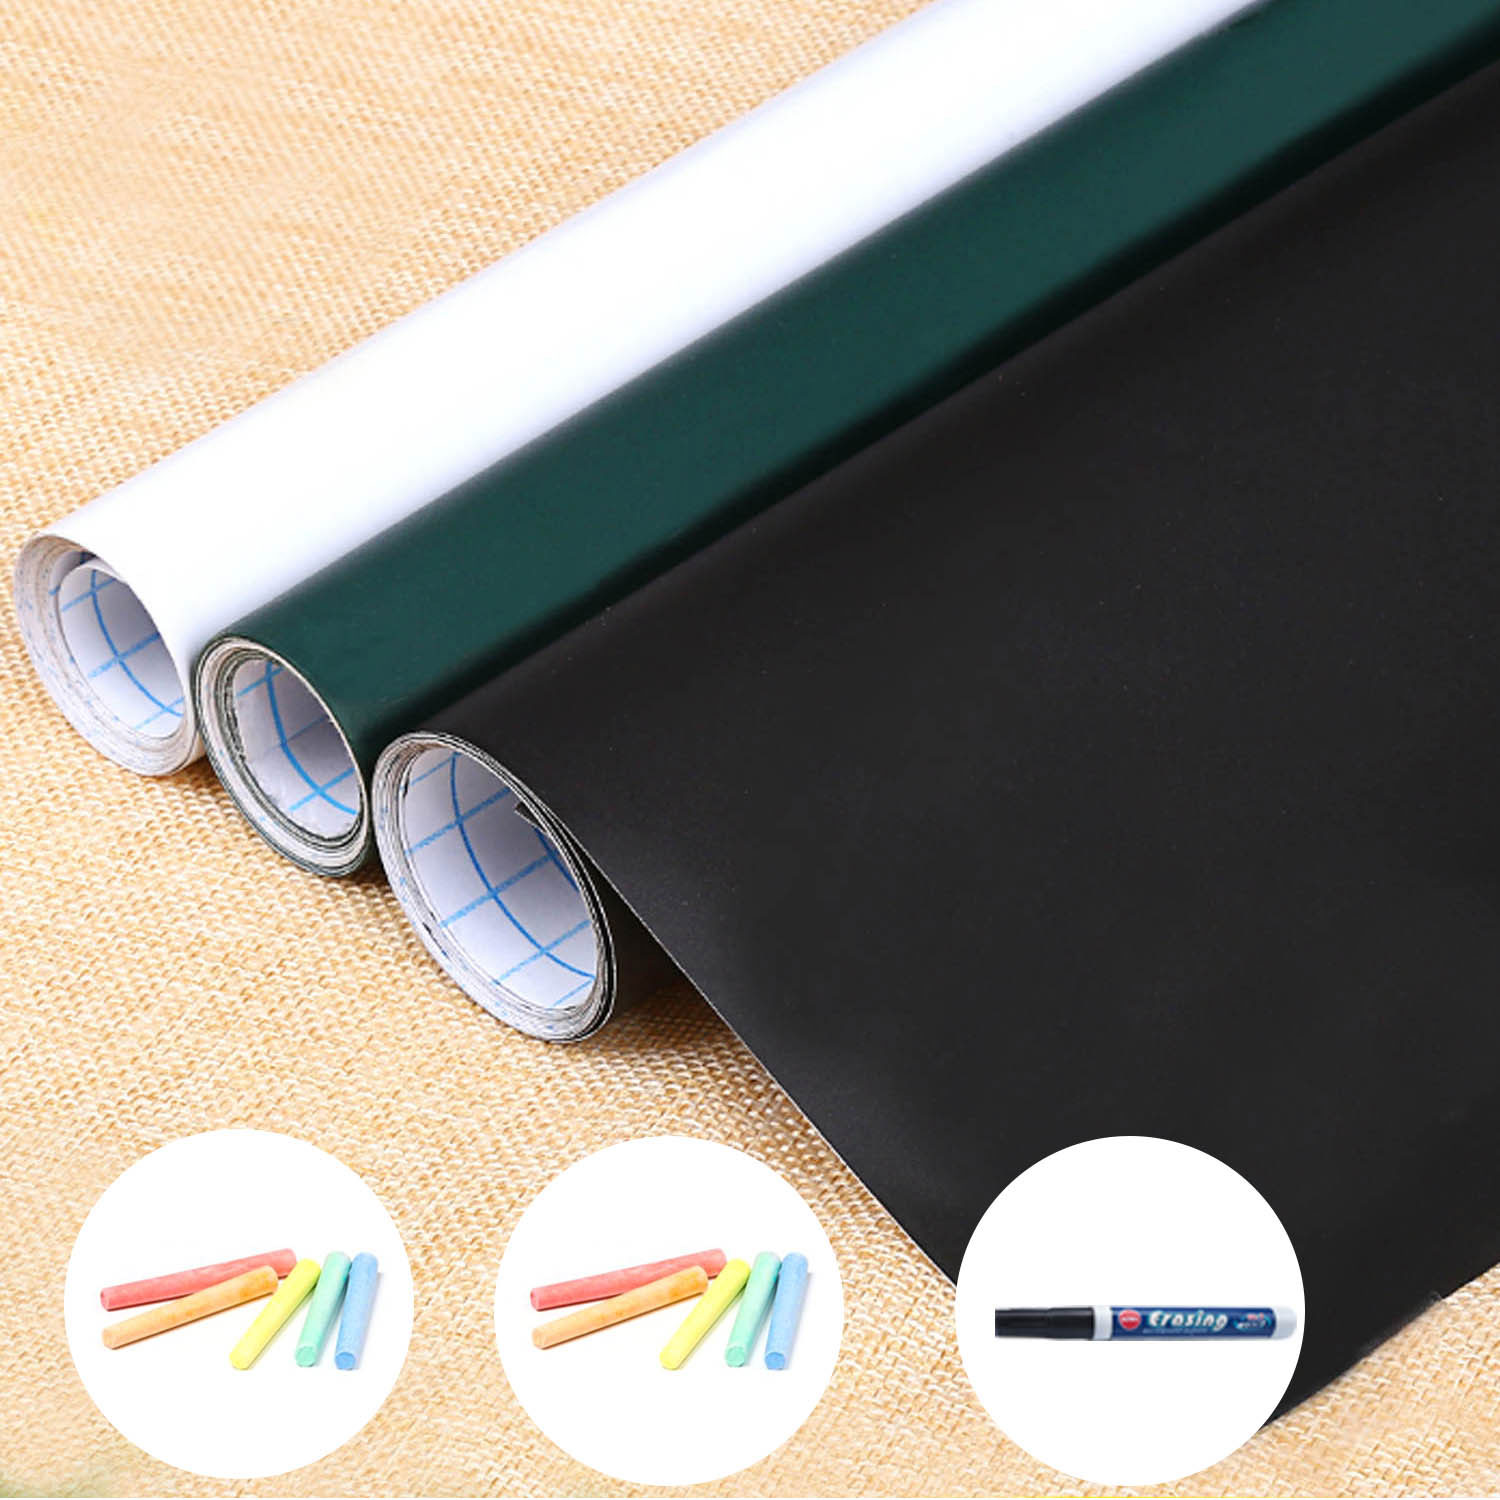 Self-Adhesive Removable Blackboard Chalkboard Message Board Wall Paper Decal Sticker For Office Home School Supplies 60x200cm